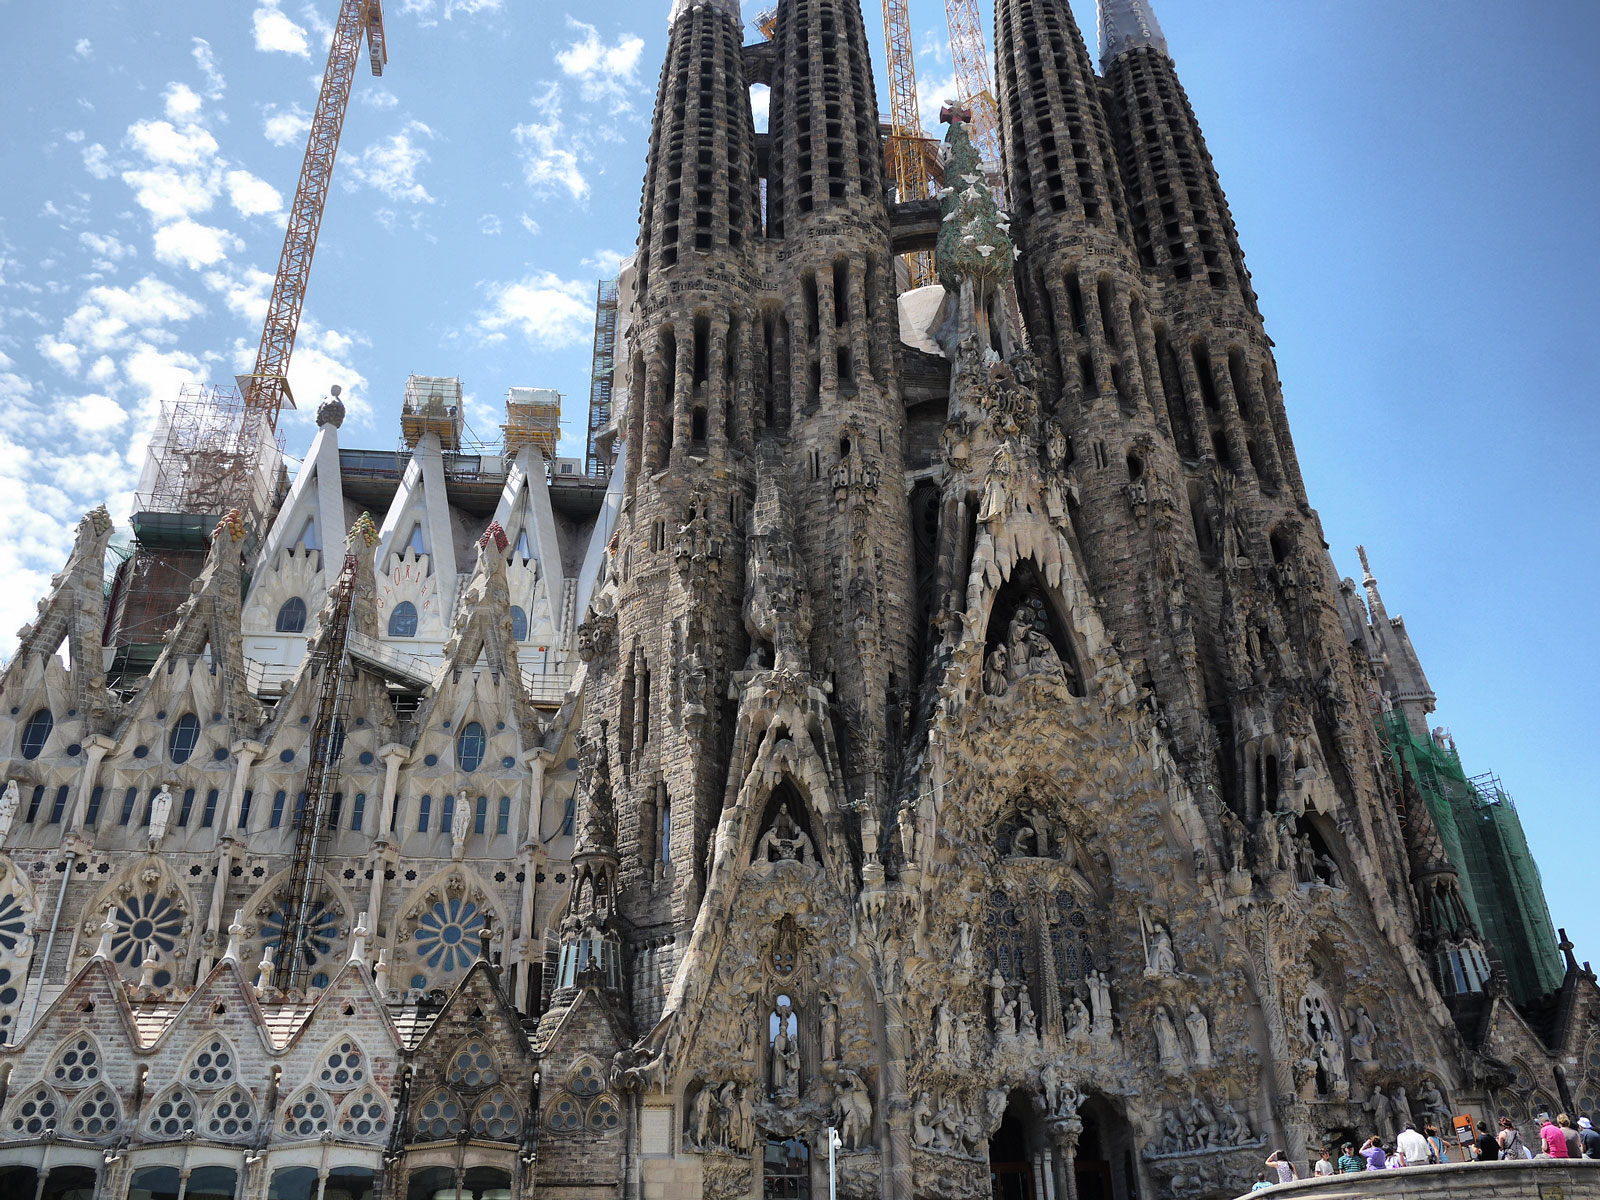 Taking In the Overwhelming Beauty of Sagrada Familia - Barcelona, Spain